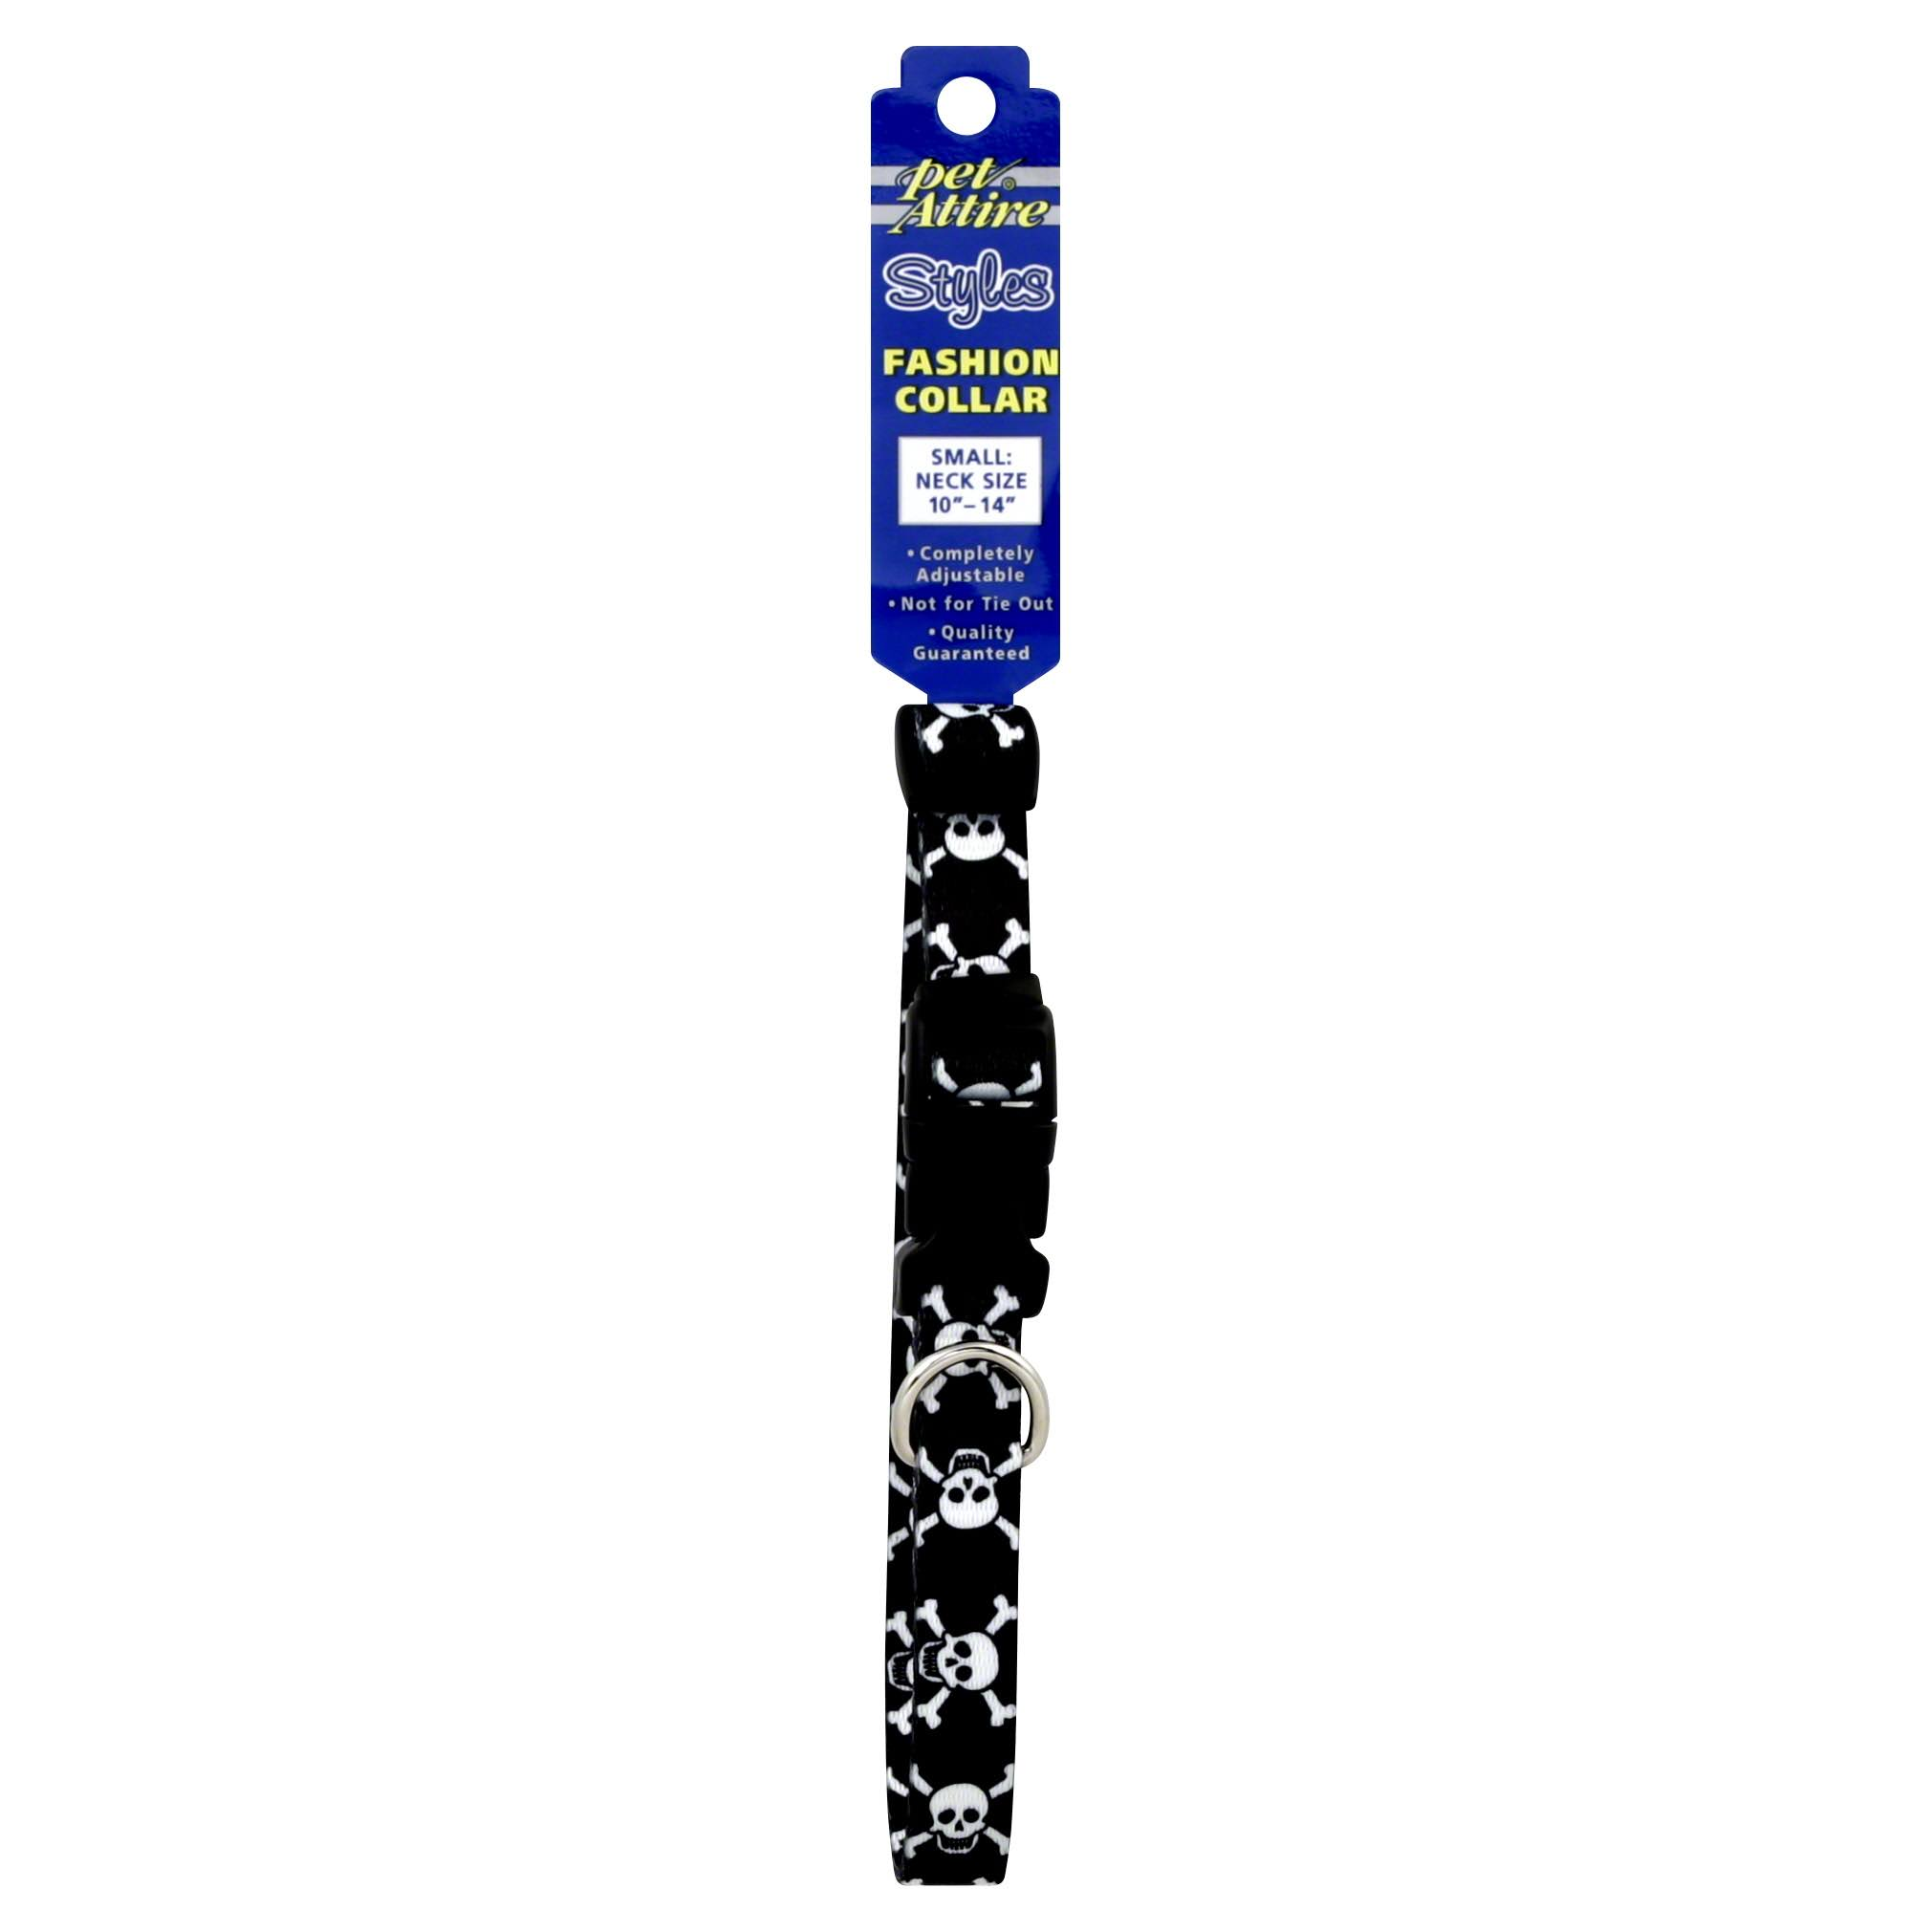 Coastal Pet Attire Styles Adjustable Dog Collar - Skull & Cross Bones